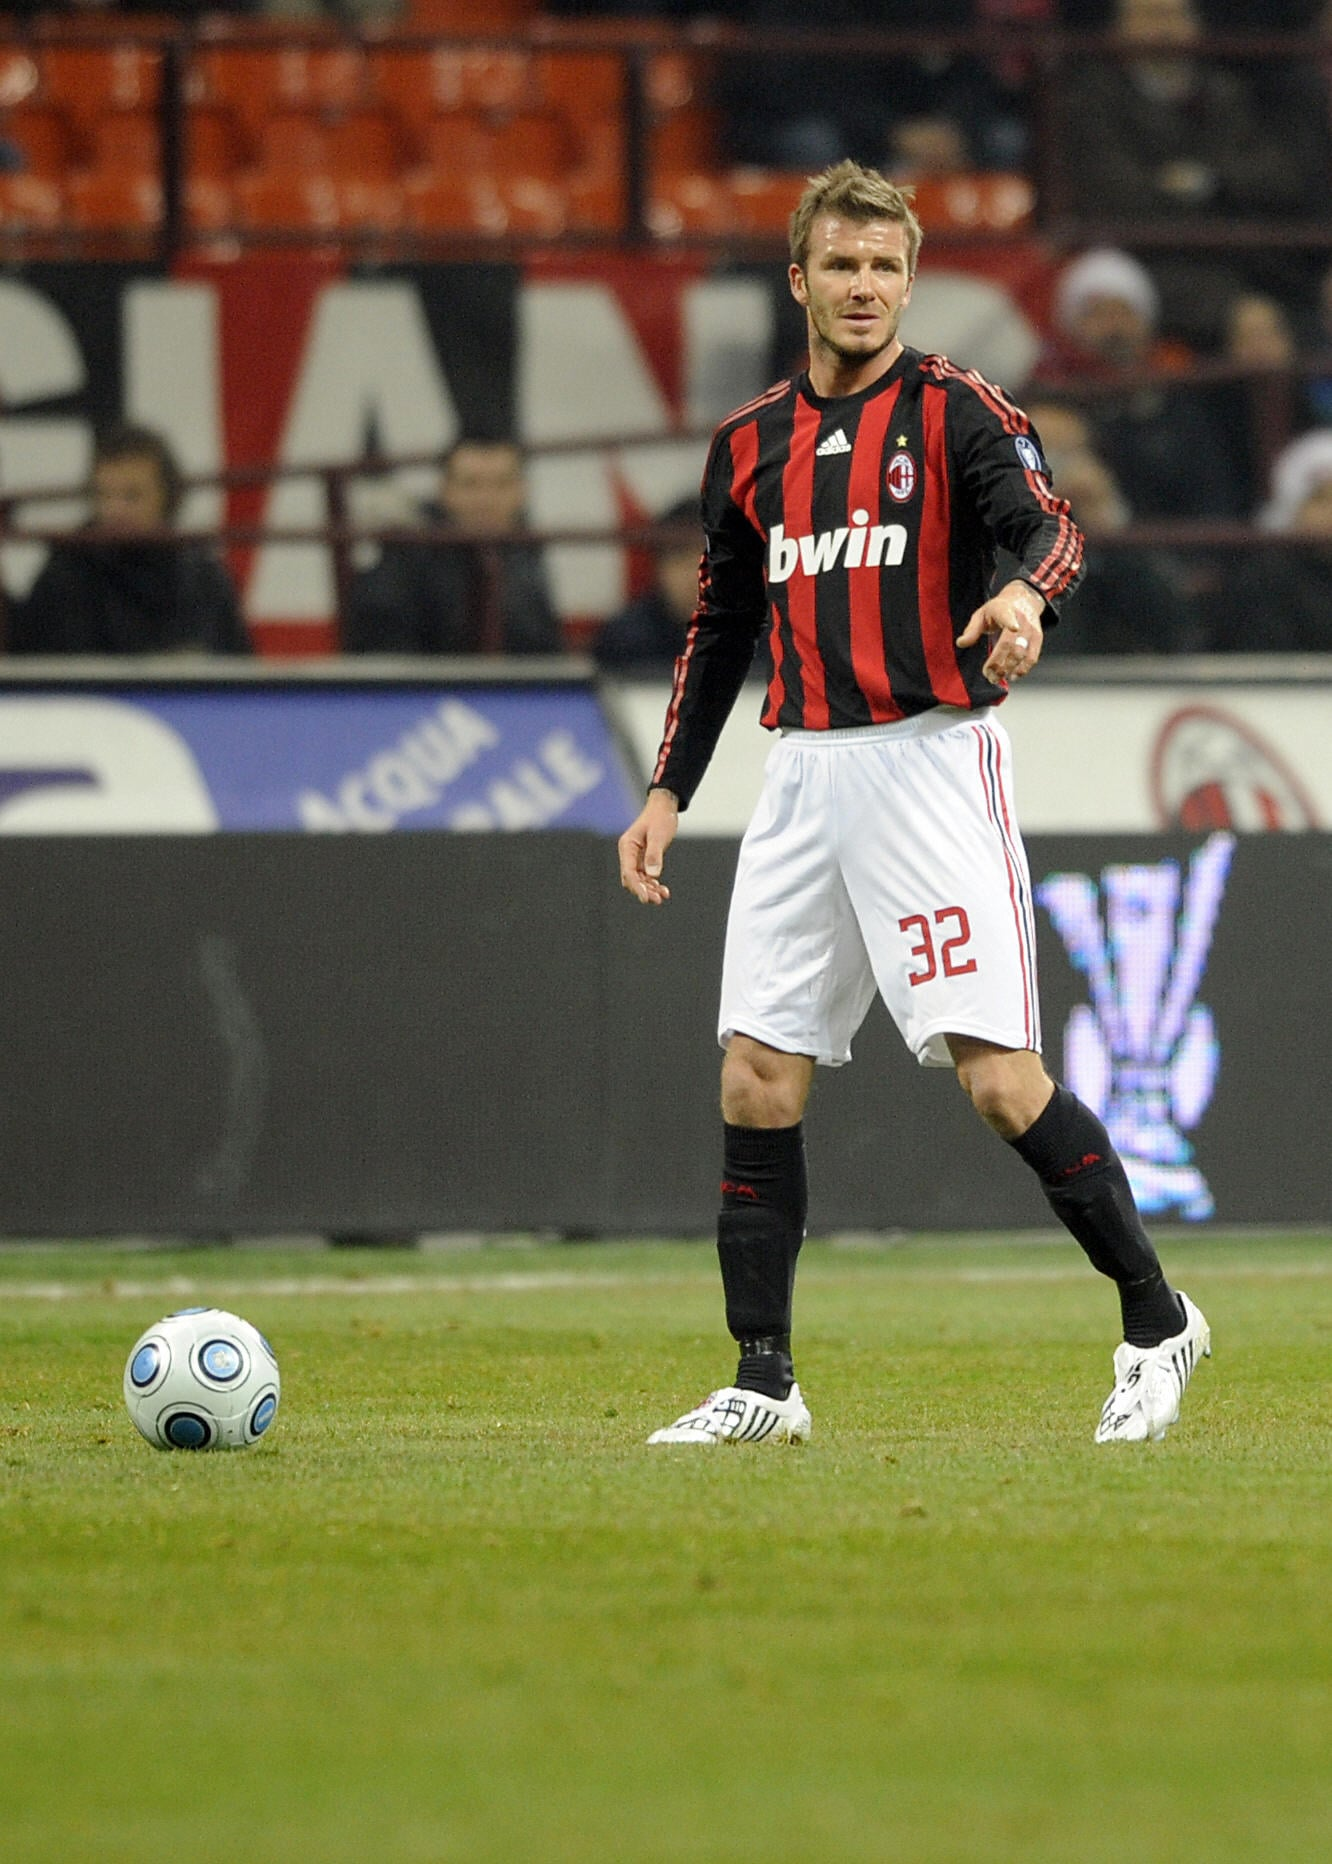 Photos of David Beckham Playing Soccer in Milan | POPSUGAR ...